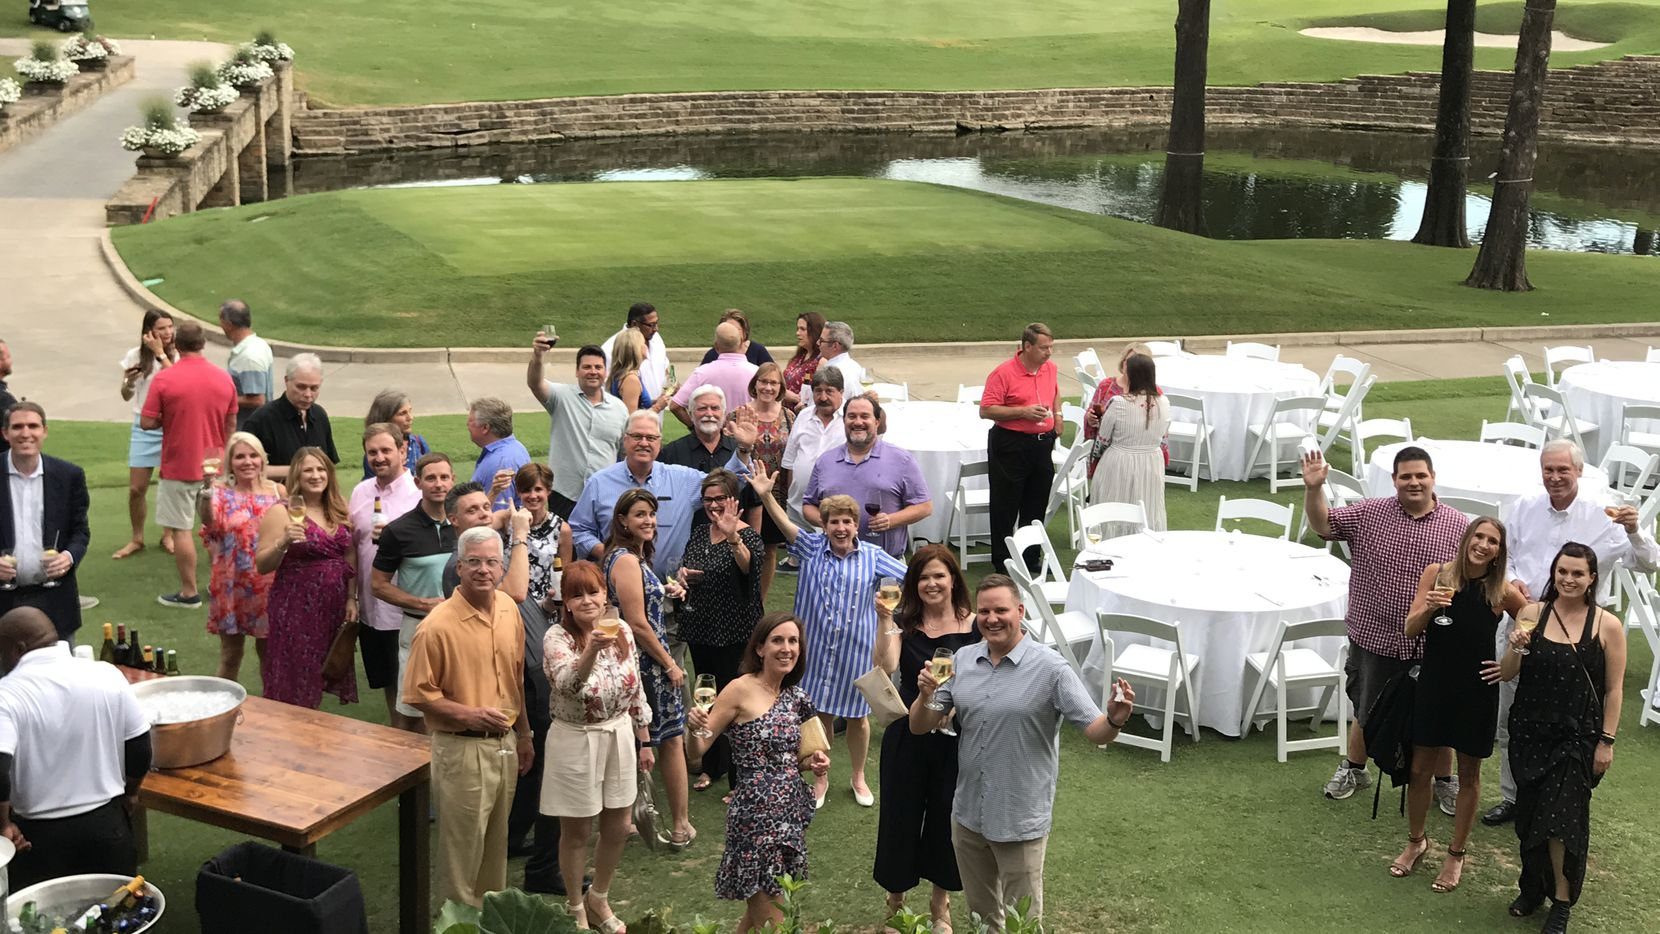 Billingsley Co. workers gathered for a party on a golf course. The family-owned company specializes in master-planned developments and principles of new urbanism.